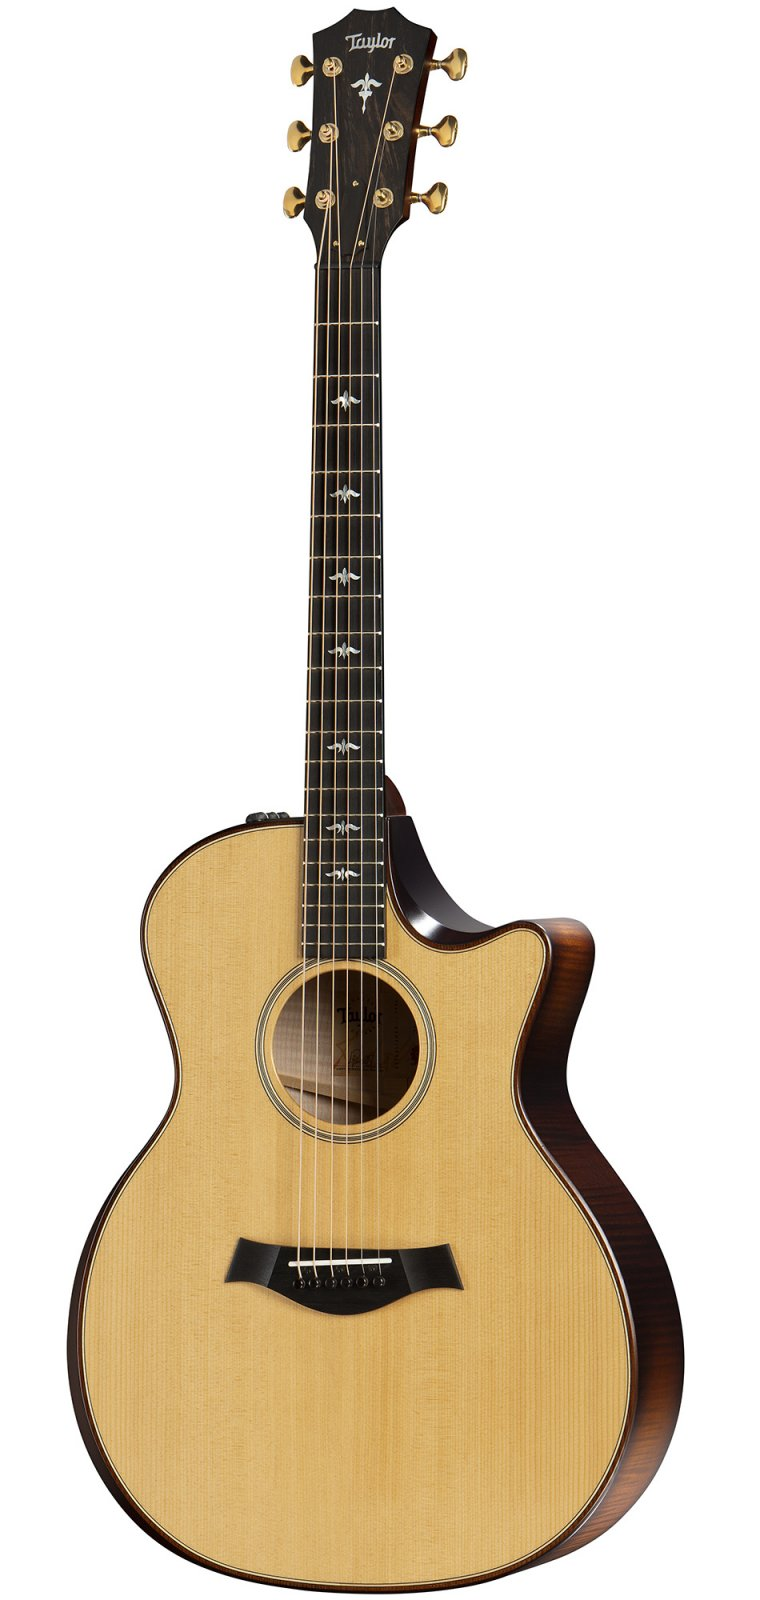 Taylor 614ce Builders Edition